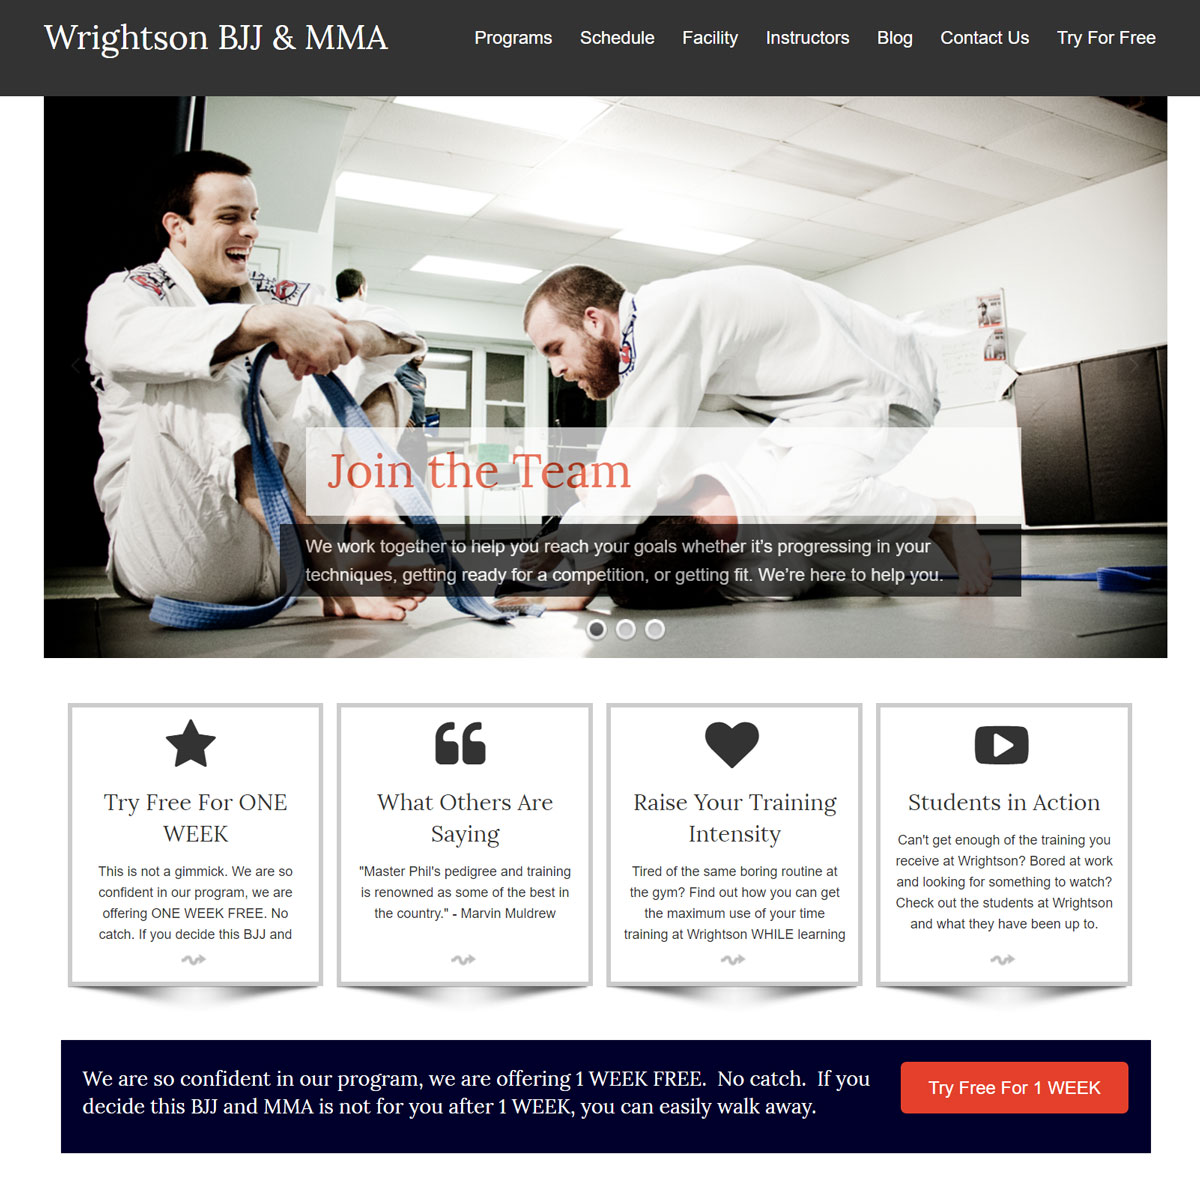 Wrightson BJJ website design and photography